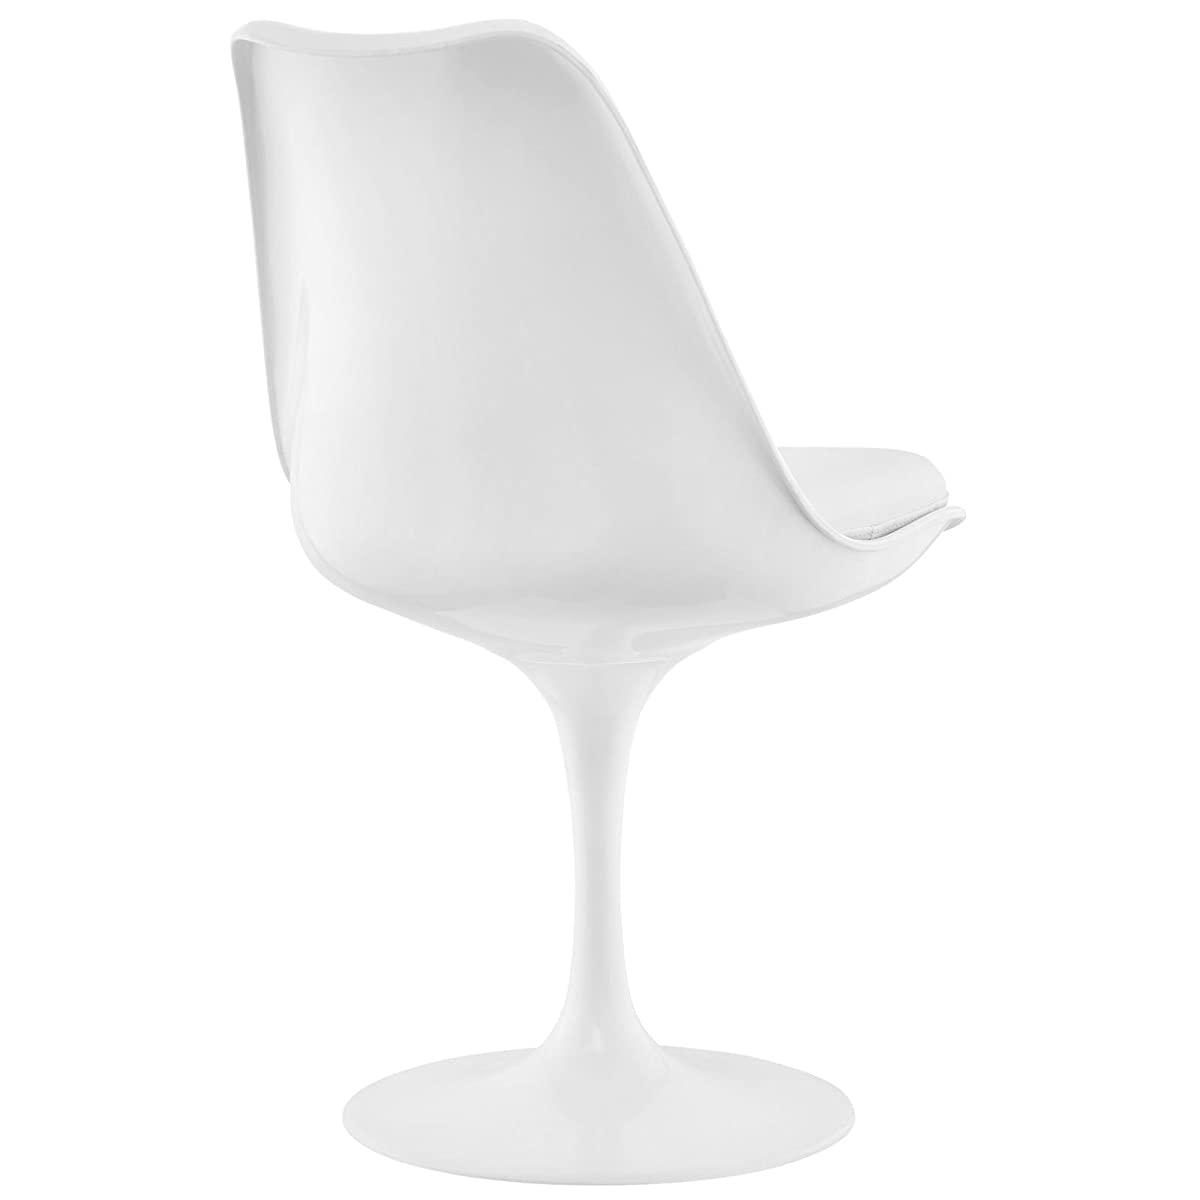 Modway Lippa Modern Dining Side Chair With Faux Leather Cushion in White